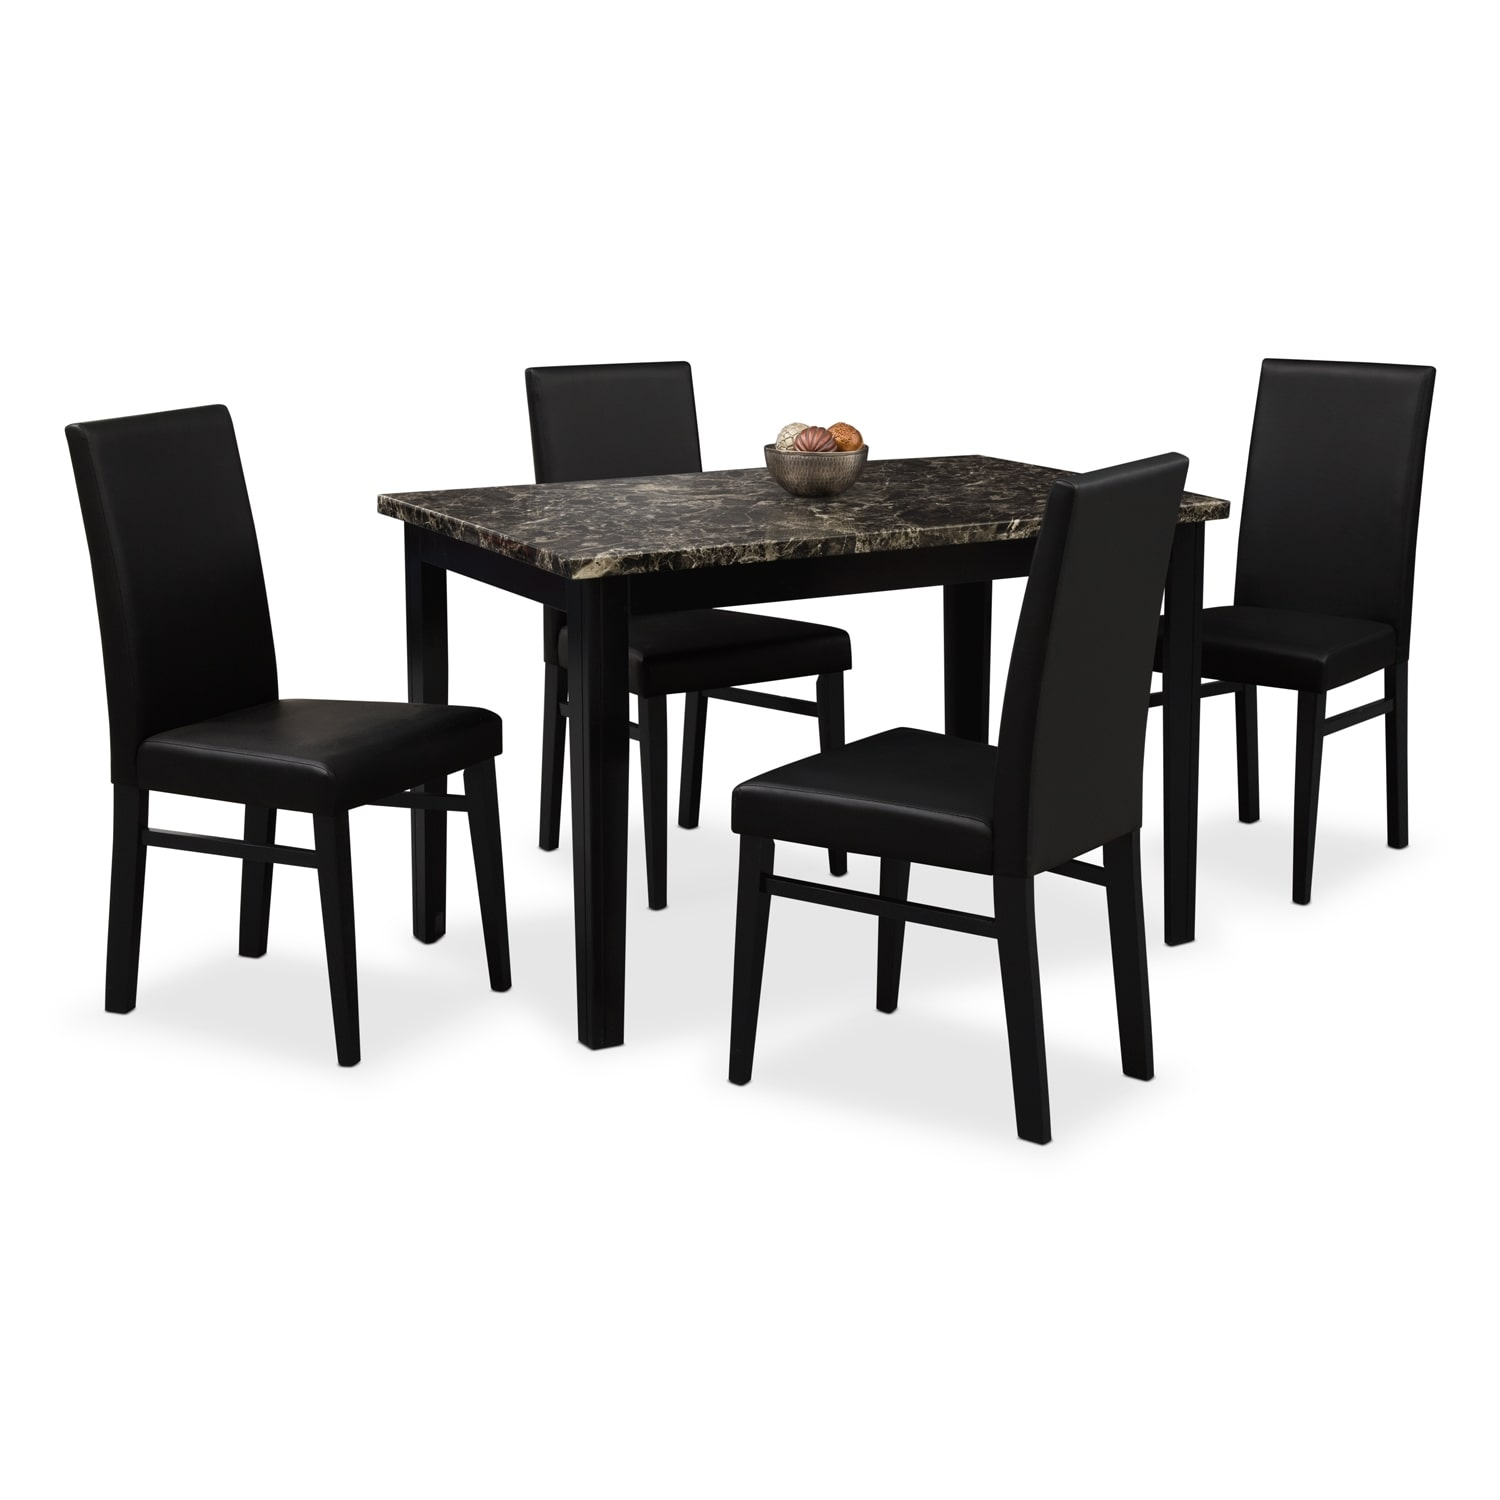 black table and chairs navy velvet dining shadow 4 value city furniture mattresses room